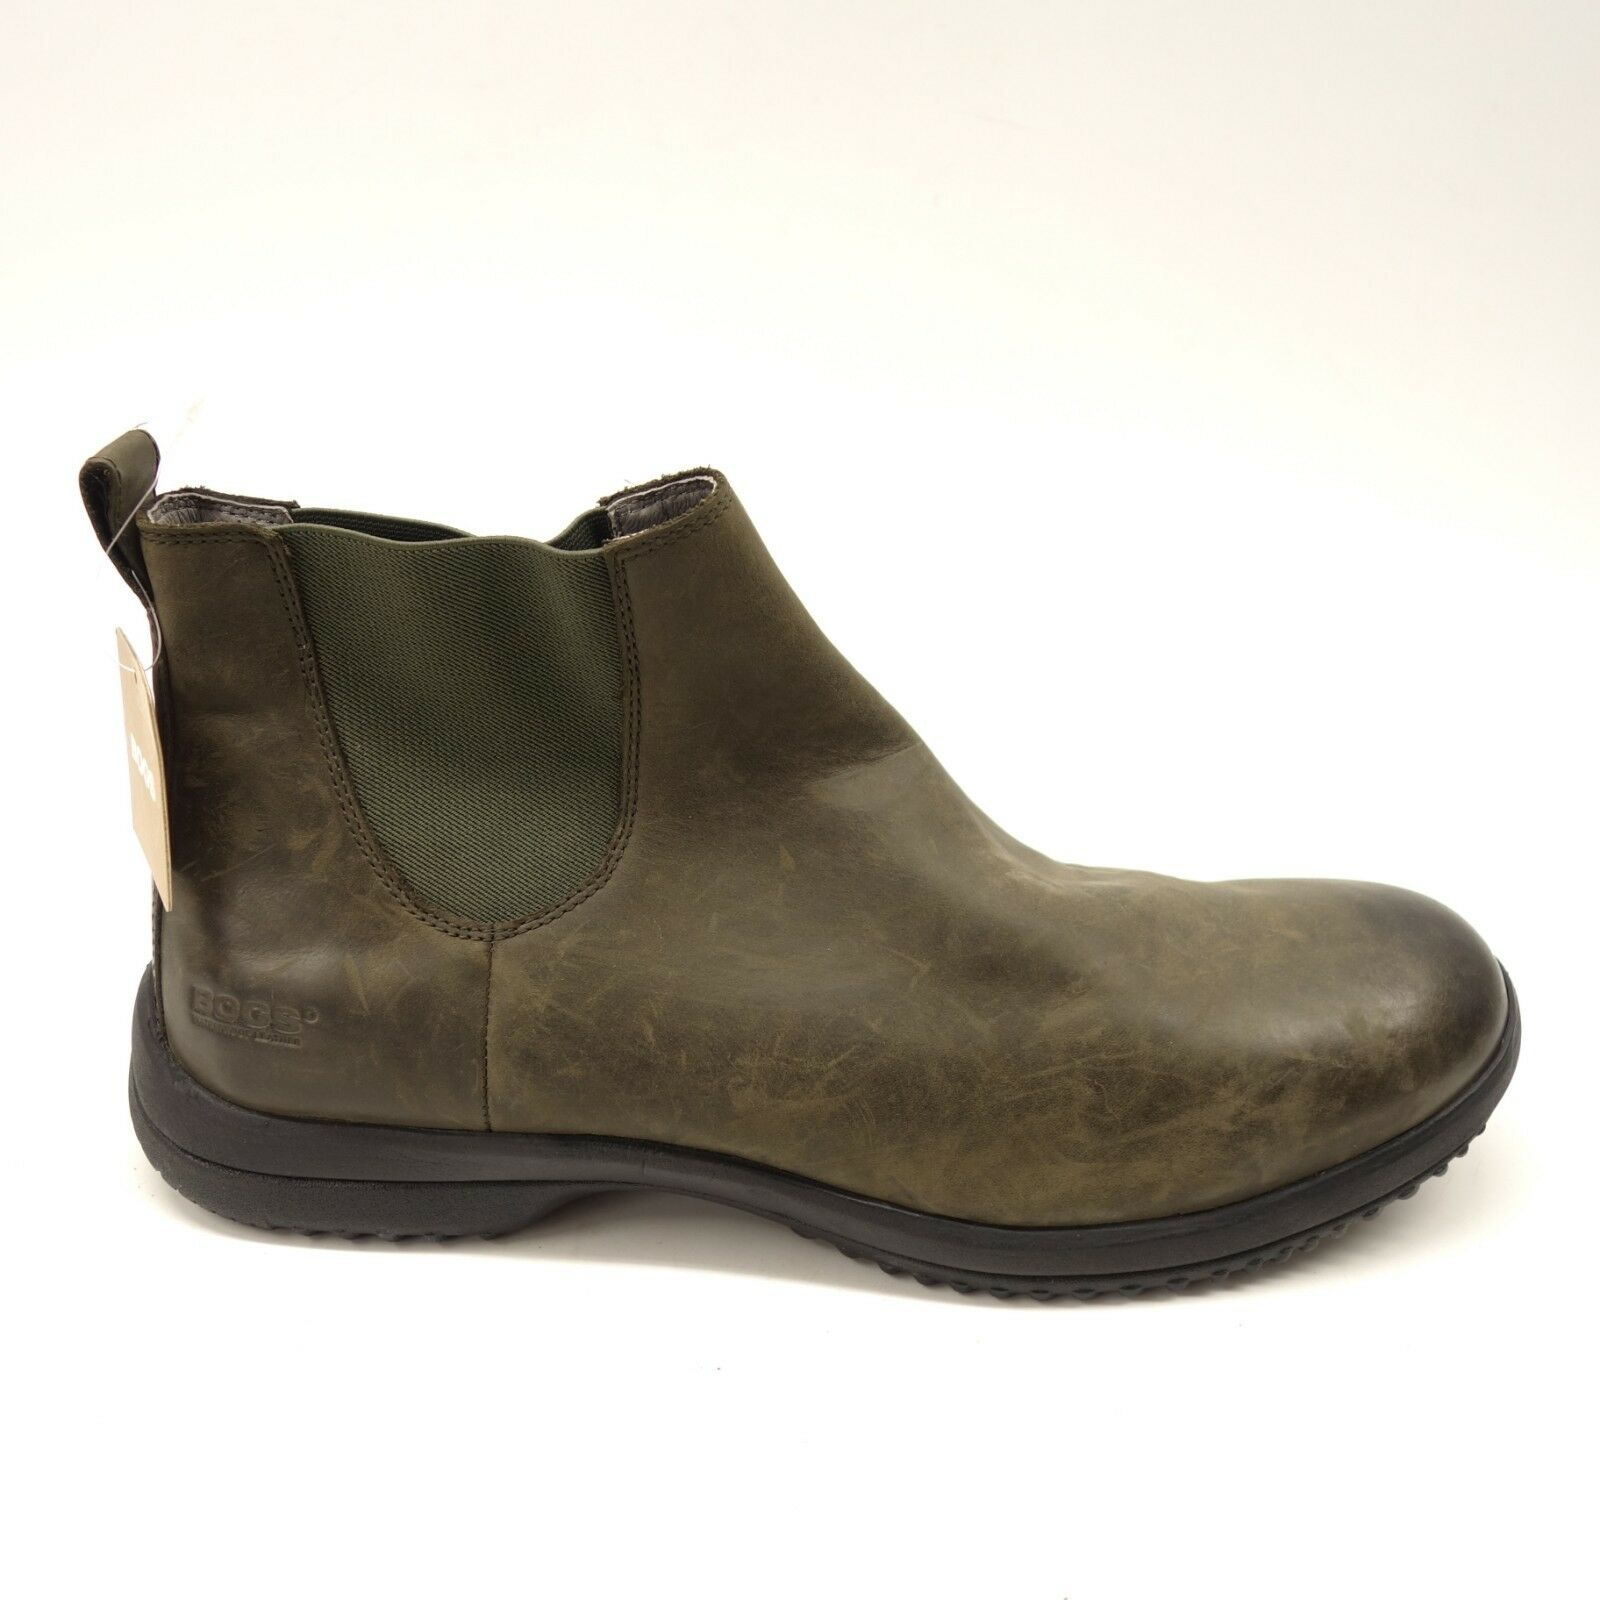 New Bogs Mens Carson Chelsea Rain Leather Casual Olive Waterproof Boots Size 14